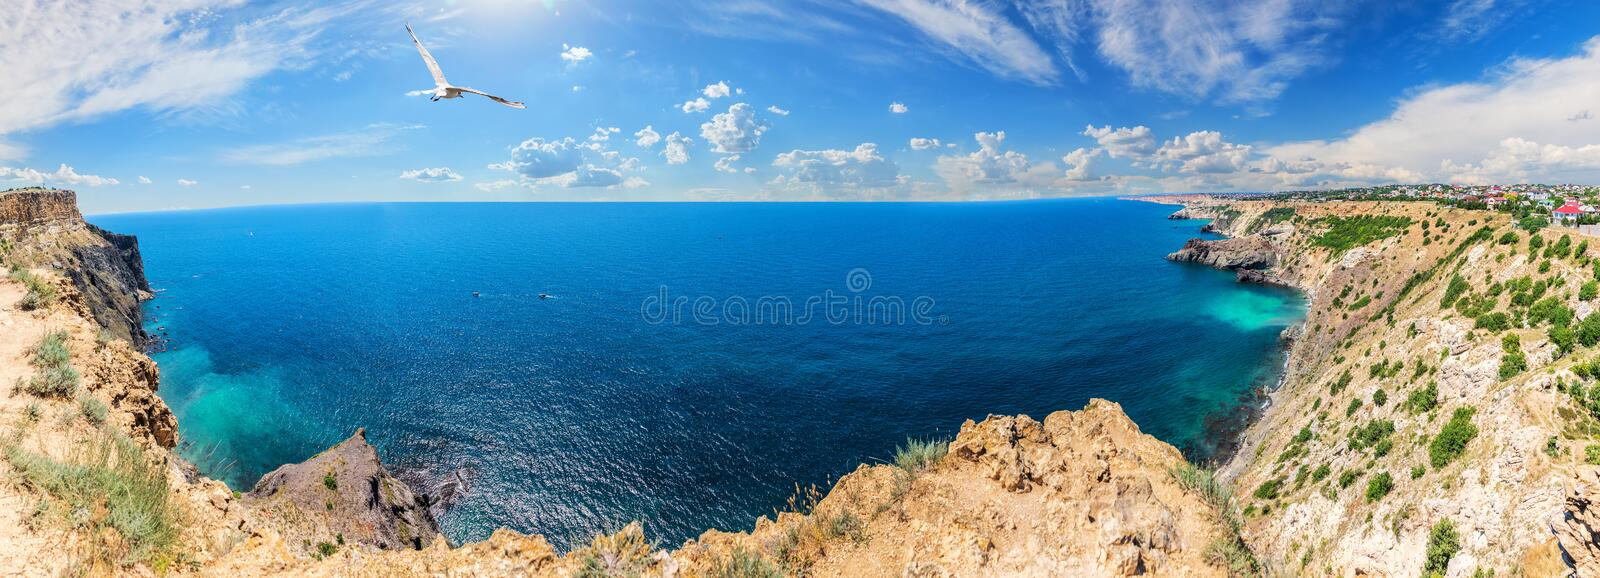 Cape Fiolent in Crimea, beautiful sea panorama.  royalty free stock photography